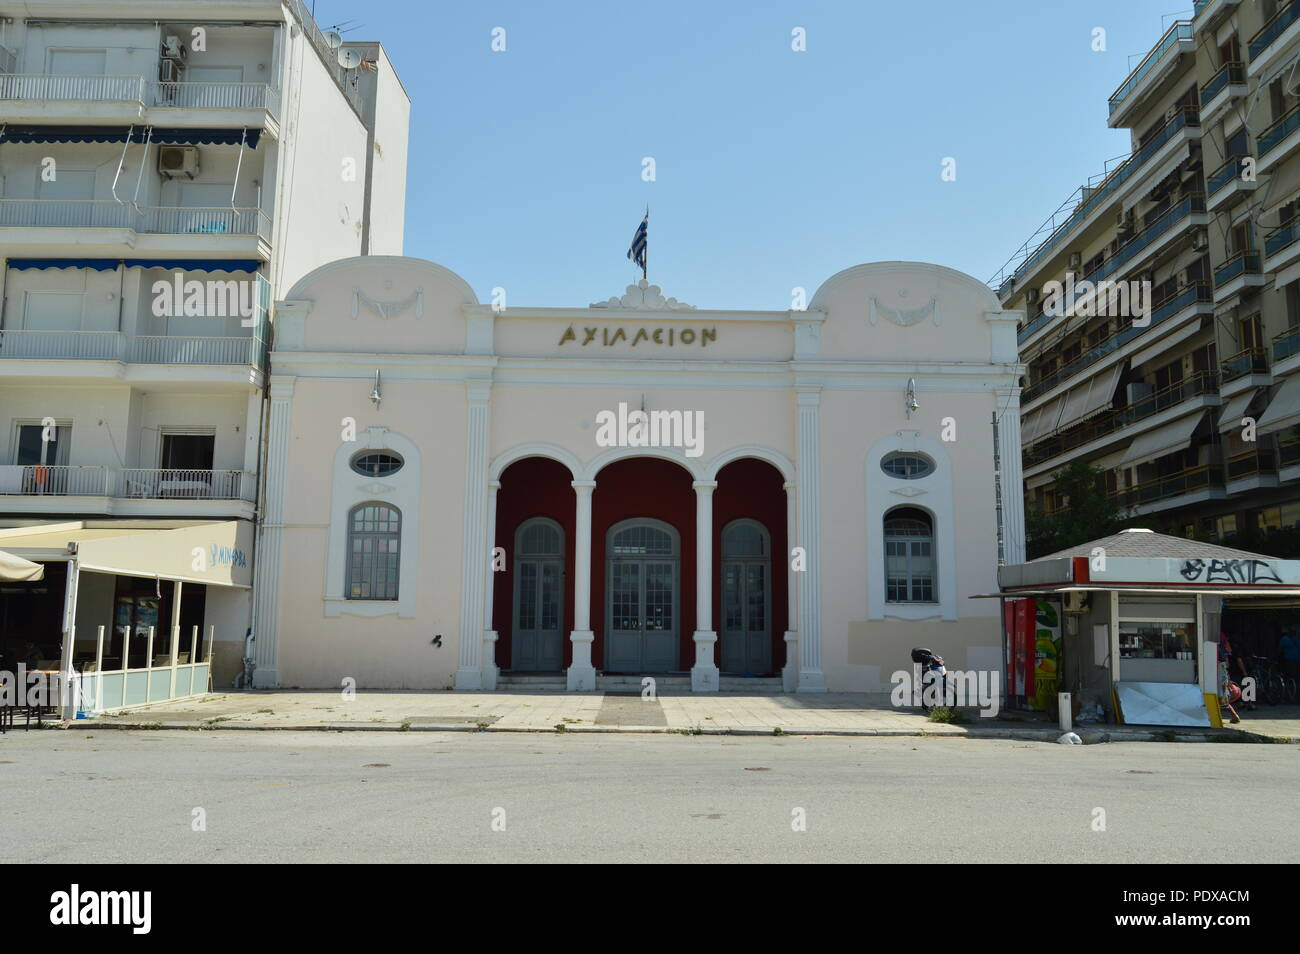 Nice Main Facade Of The National Bank Of Greece In Volos. Architecture History Travel.4 July 2018. Volos. Magnesia. Greece. - Stock Image